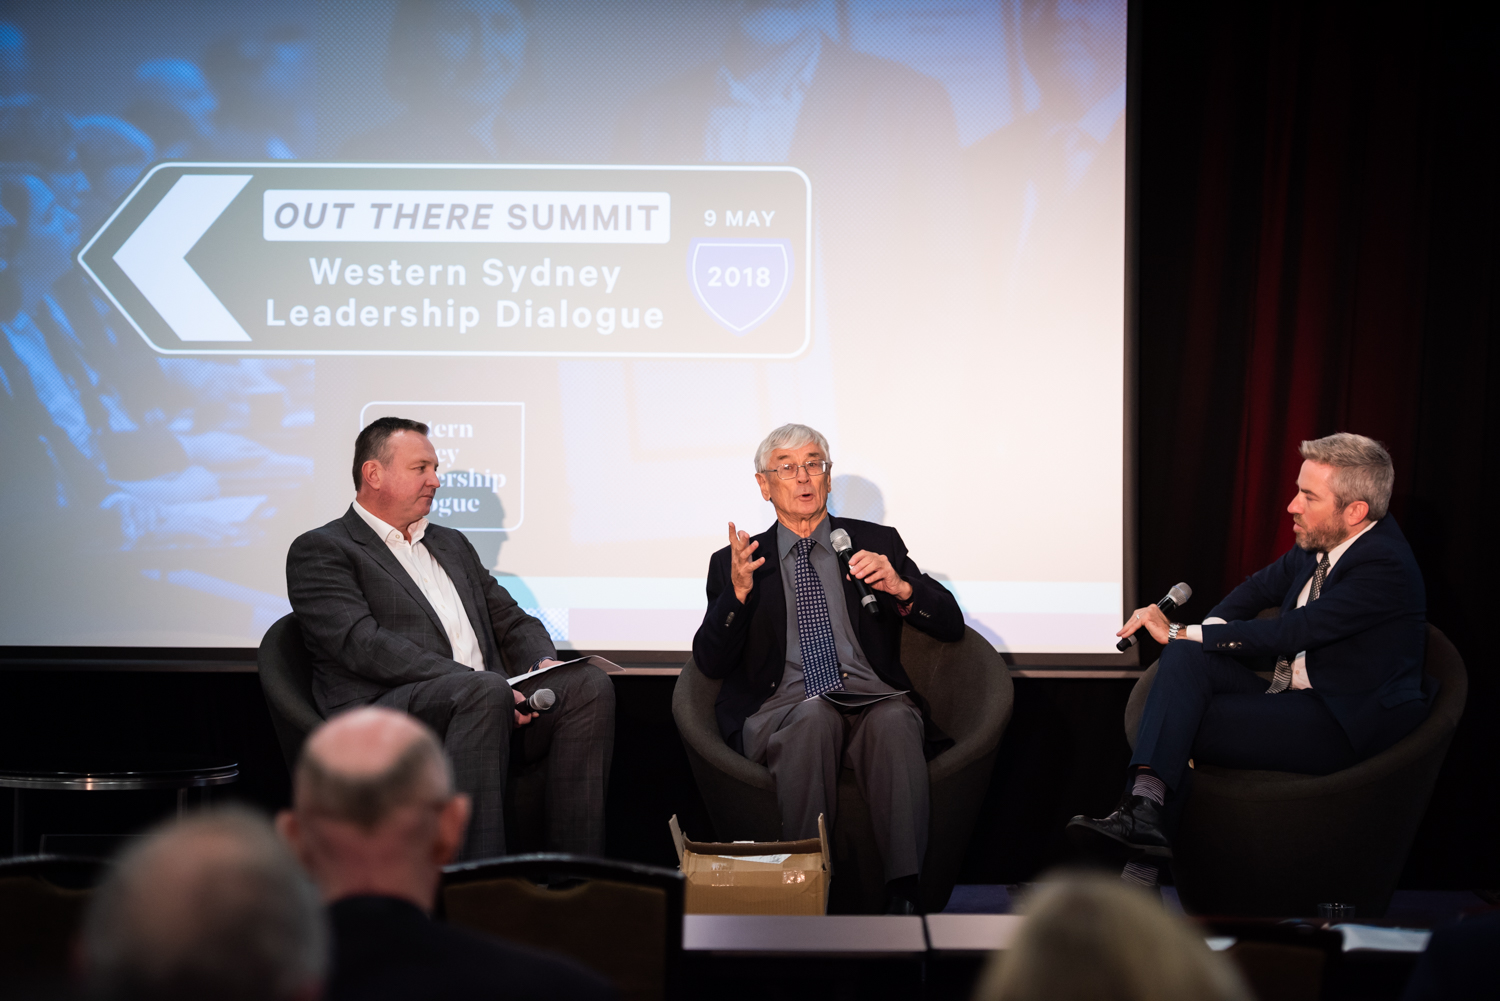 Sydney Business Chambers' David Borger and population provocateur Dick Smith ac with Dr Andy Marks (WSU) at the 2018 Out There Summit